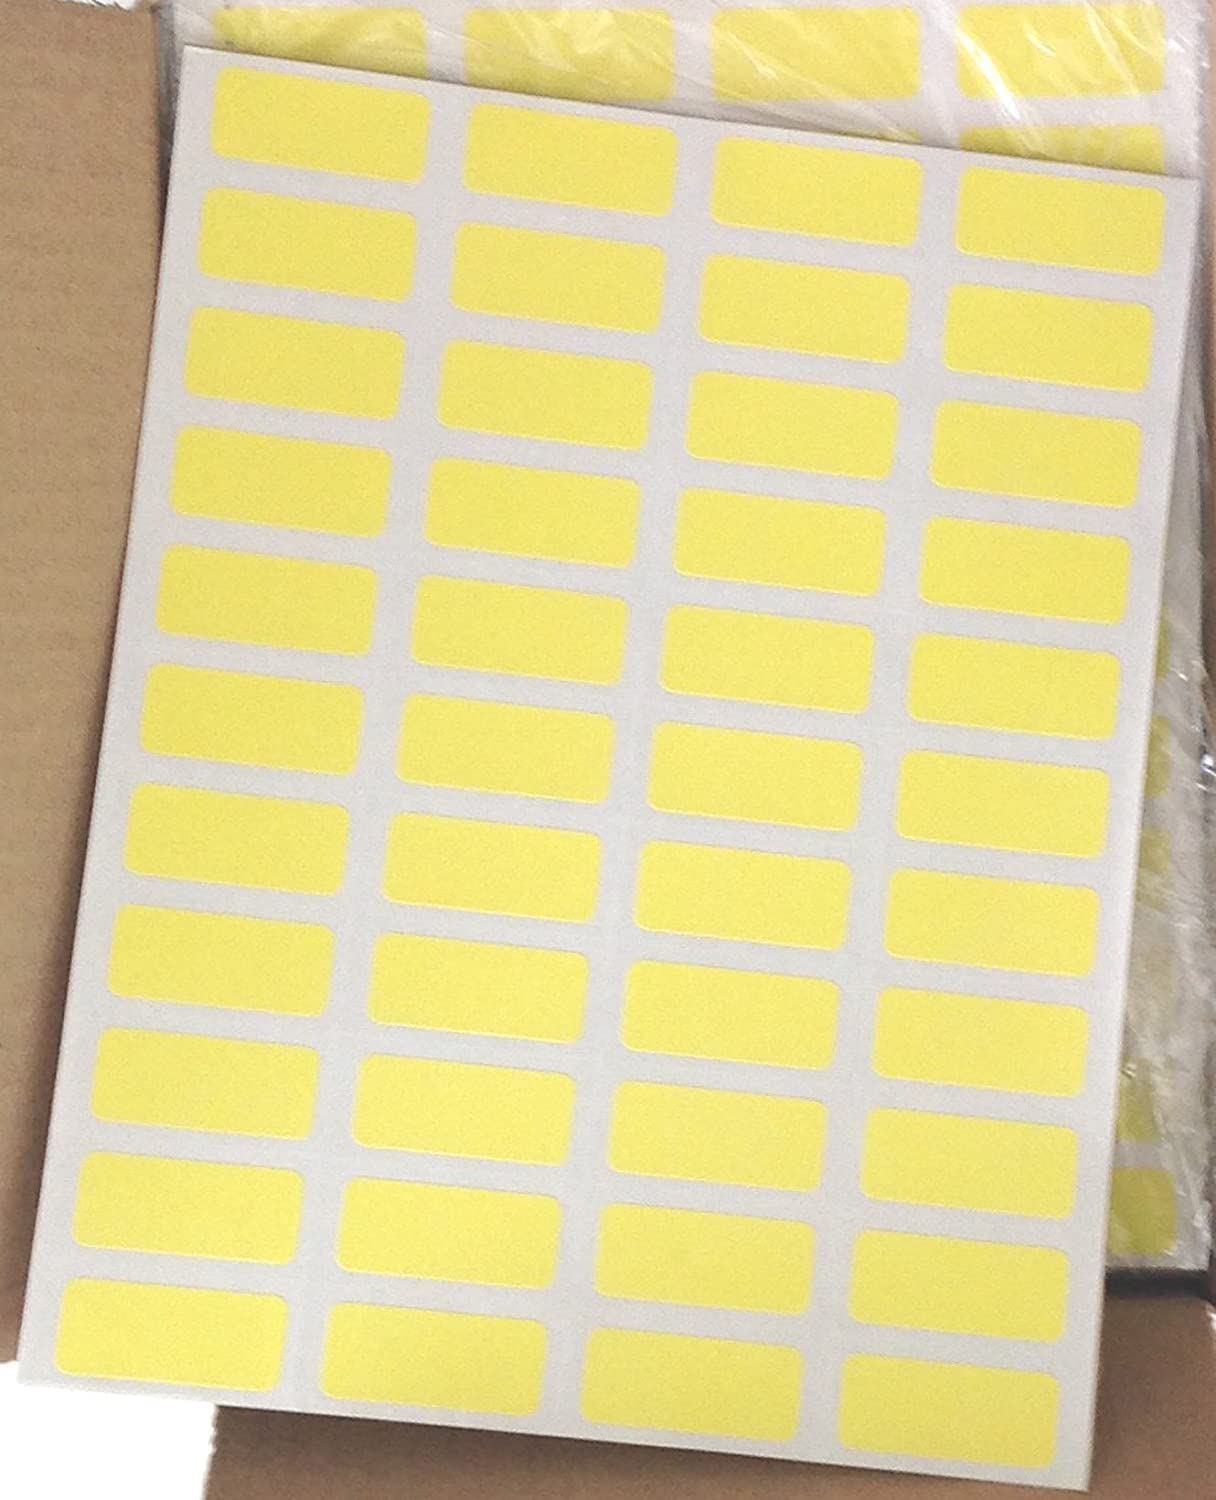 Patient Charge Labels Laser 44 Yellow Outlet sale feature 1-3 Baltimore Mall per Sheet